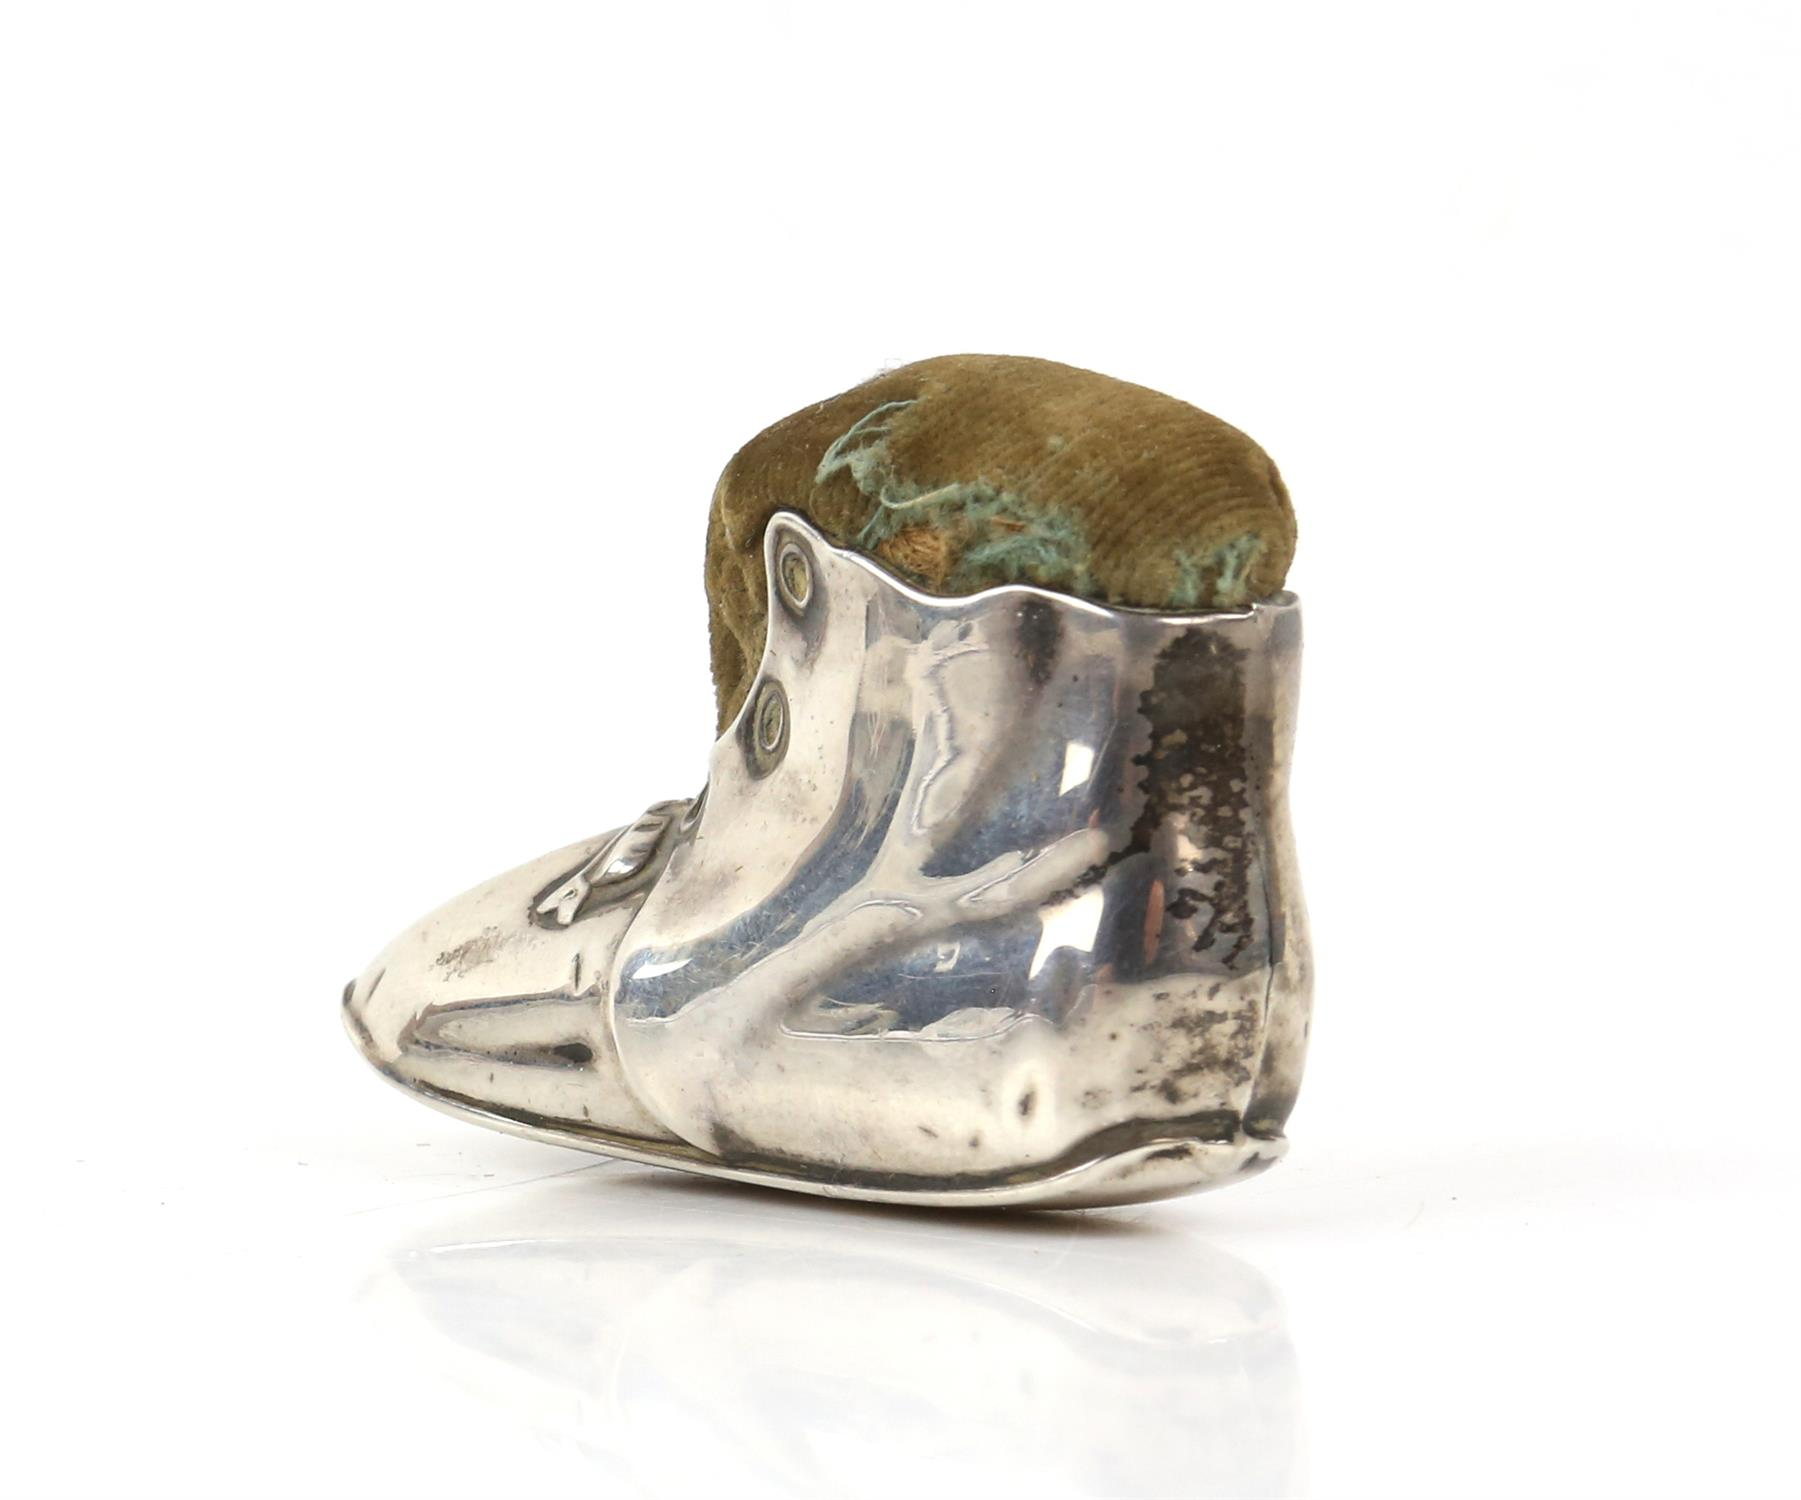 Edward VII silver novelty pin cushion in the form of a tramp's boot, Birmingham 1906 - Image 3 of 4